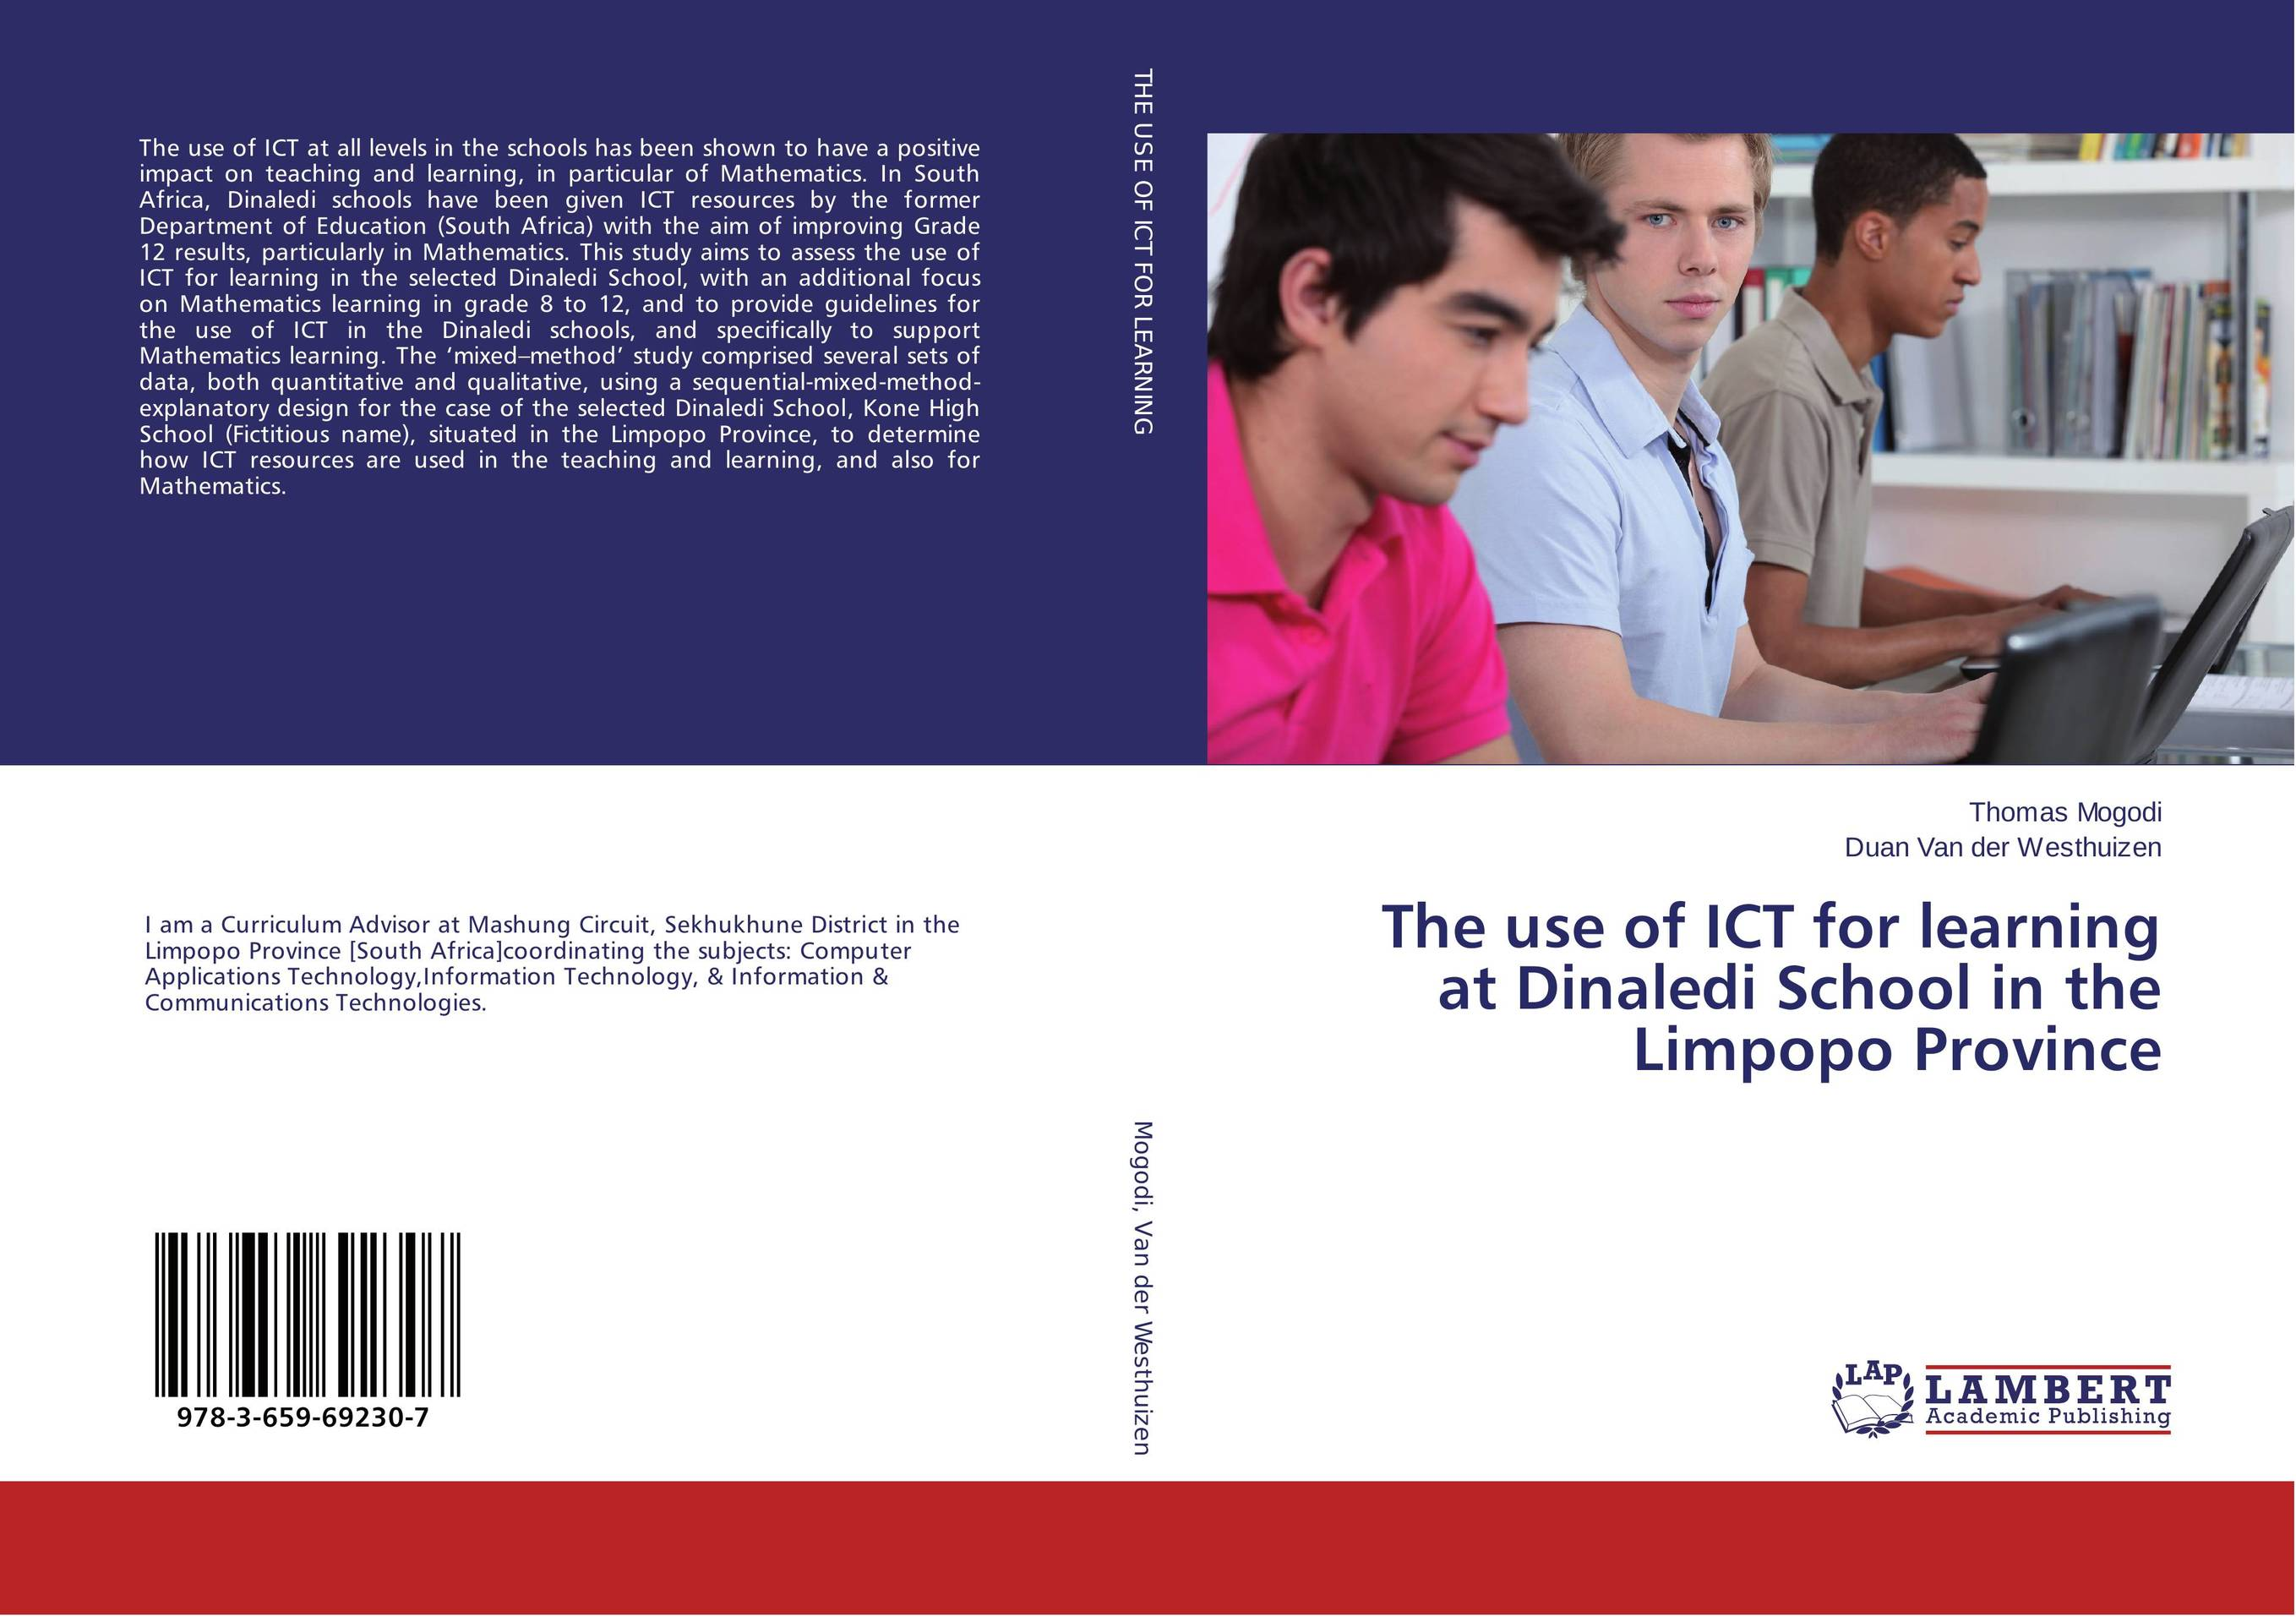 The use of ICT for learning at Dinaledi School in the Limpopo Province learning resources набор пробей